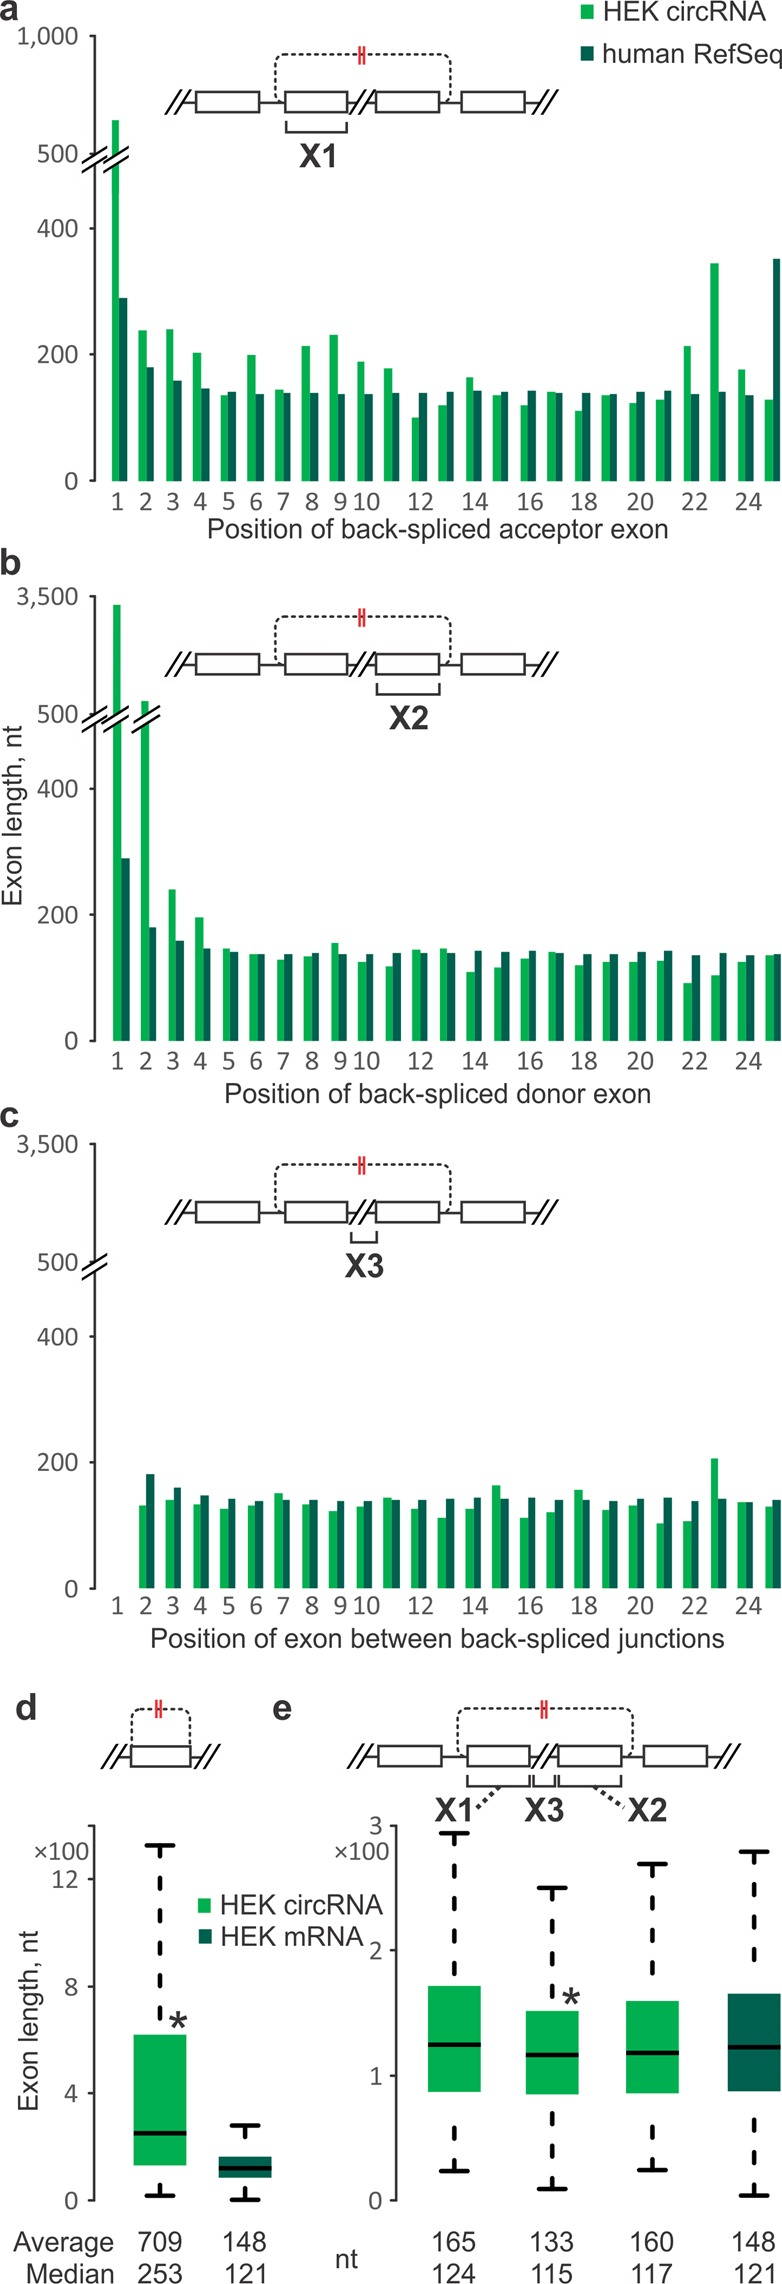 Exon lengths at human HEK 293 cell circRNA loci. Exons from circRNA-producing genes (green) are compared to RefSeq ( a – c ) or HEK-specific RefSeq ( d , e ) averages in the corresponding linear ordinal positions (dark green). ( a ) Average acceptor exon lengths. ( b ) Same as ( a ), but for donor exons. ( c ) Same as ( a ), but for circRNA-internal exons. ( d ) Single-exon circRNAs (green) compared to the internal exon lengths of HEK-specific RefSeq mRNAs (dark green). ( e ) Same as ( d ), but for acceptor (X1), donor (X2) and internal (X3) exons of multi-exon circRNAs. ( d , e ) Asterisks denote significantly different exon lengths between the circRNA-producing genes and HEK-specific RefSeq mRNAs (P-values